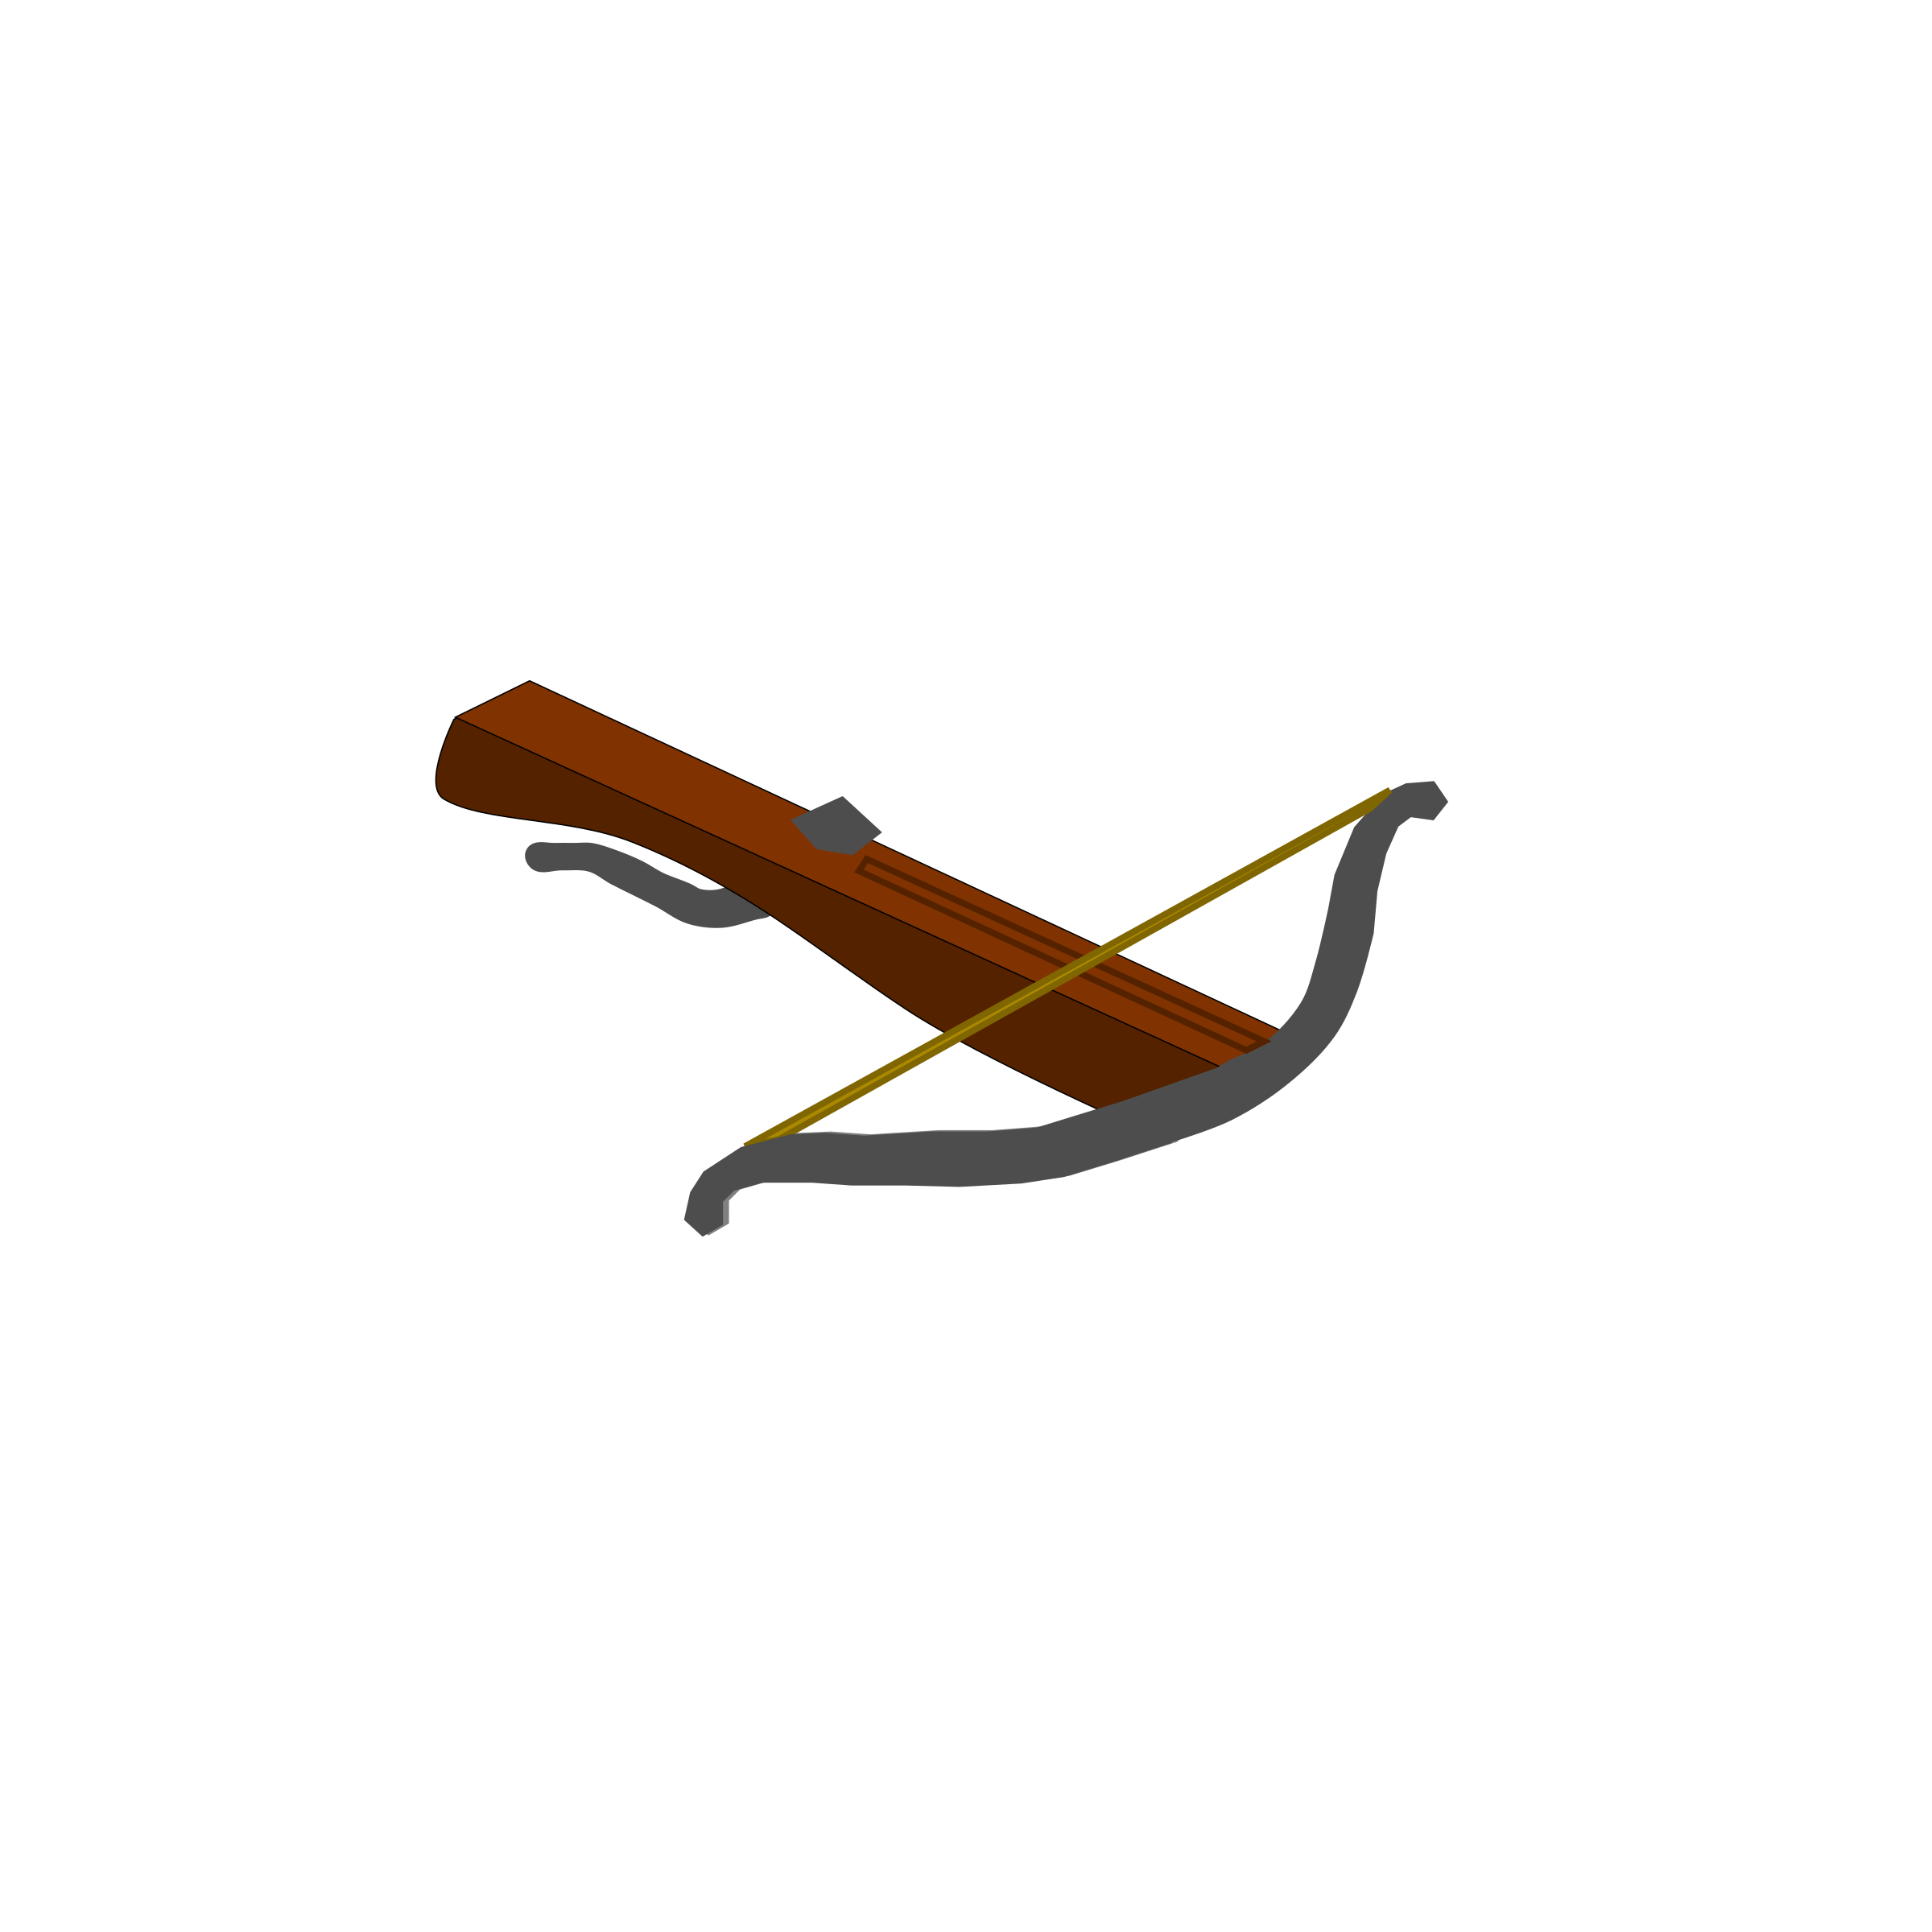 Crossbow svg #10, Download drawings